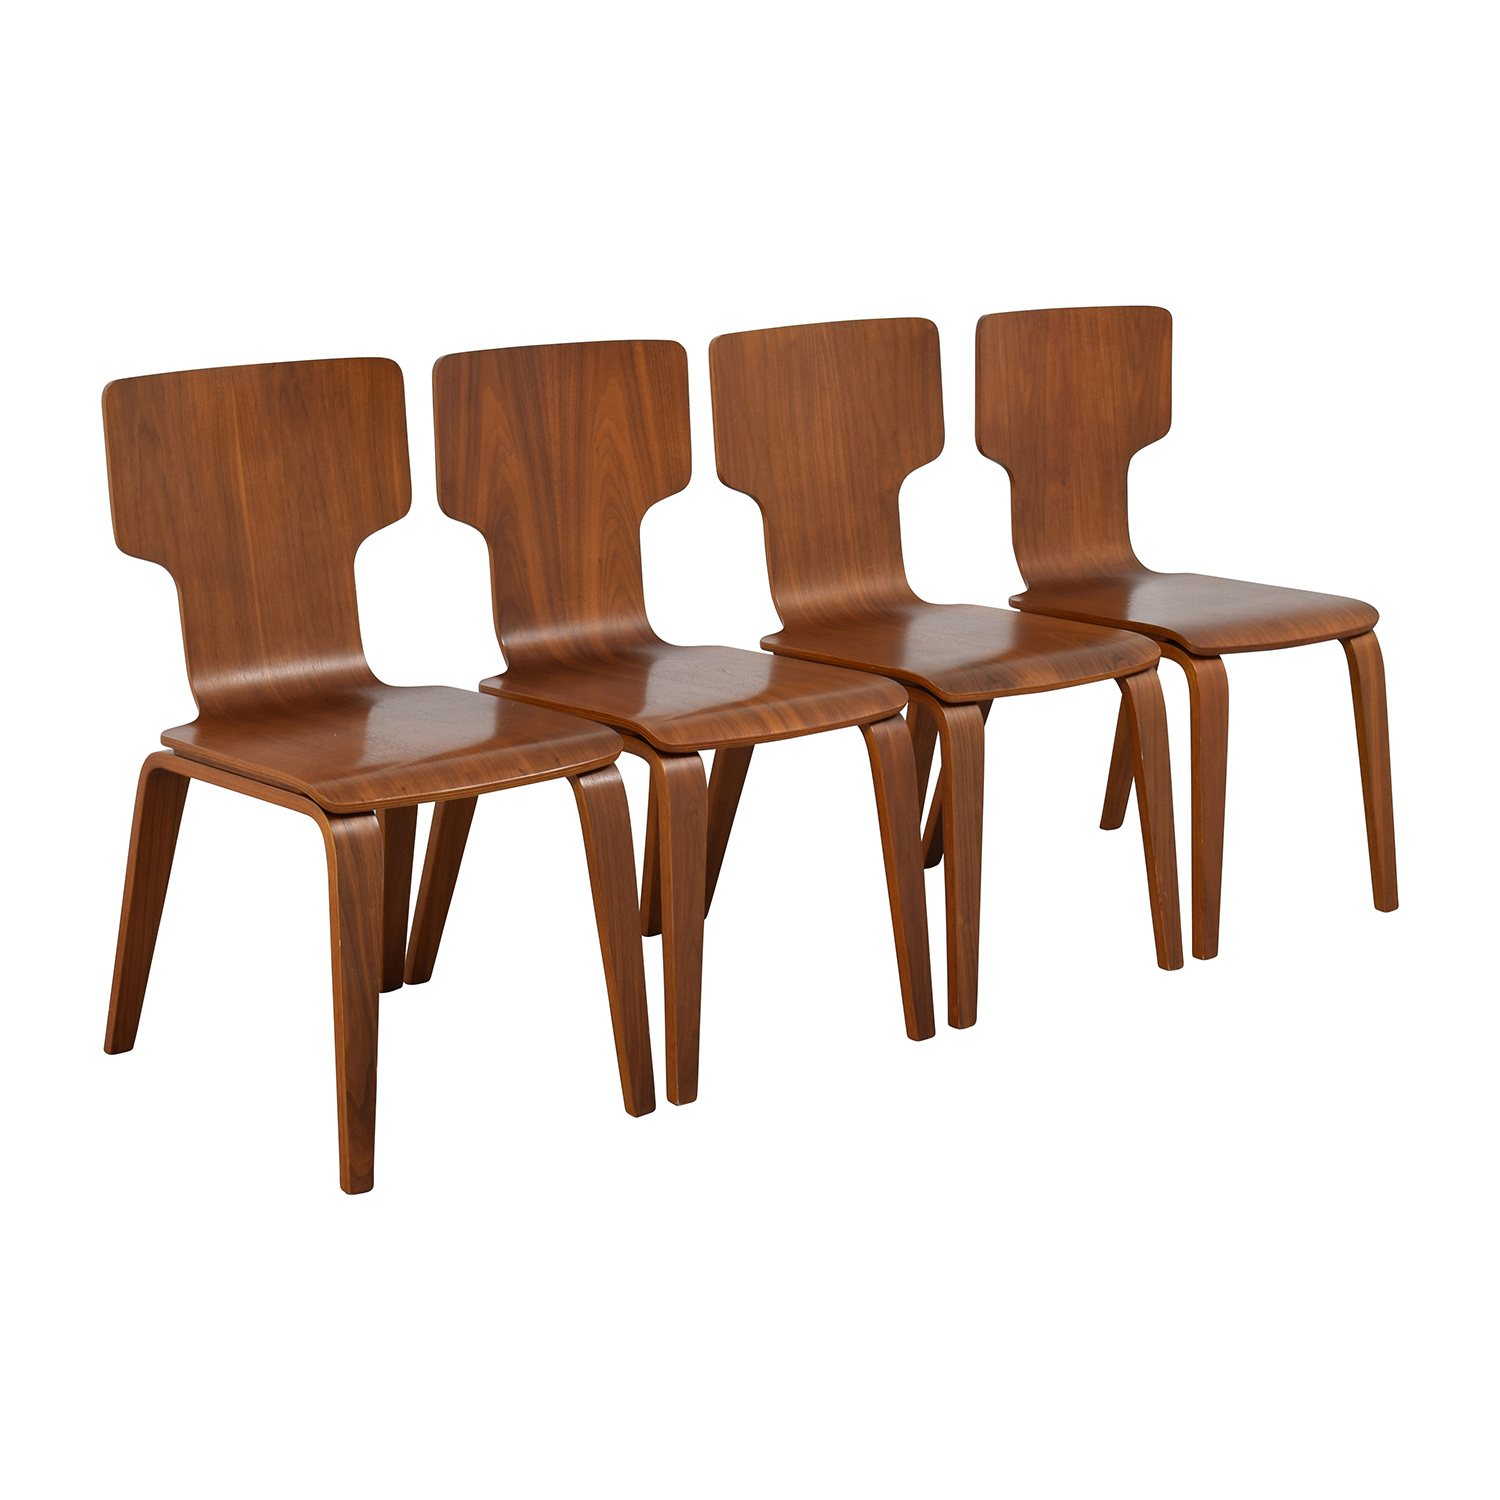 used west elm furniture. West Elm Dining Table Chairs Brown Used Furniture X